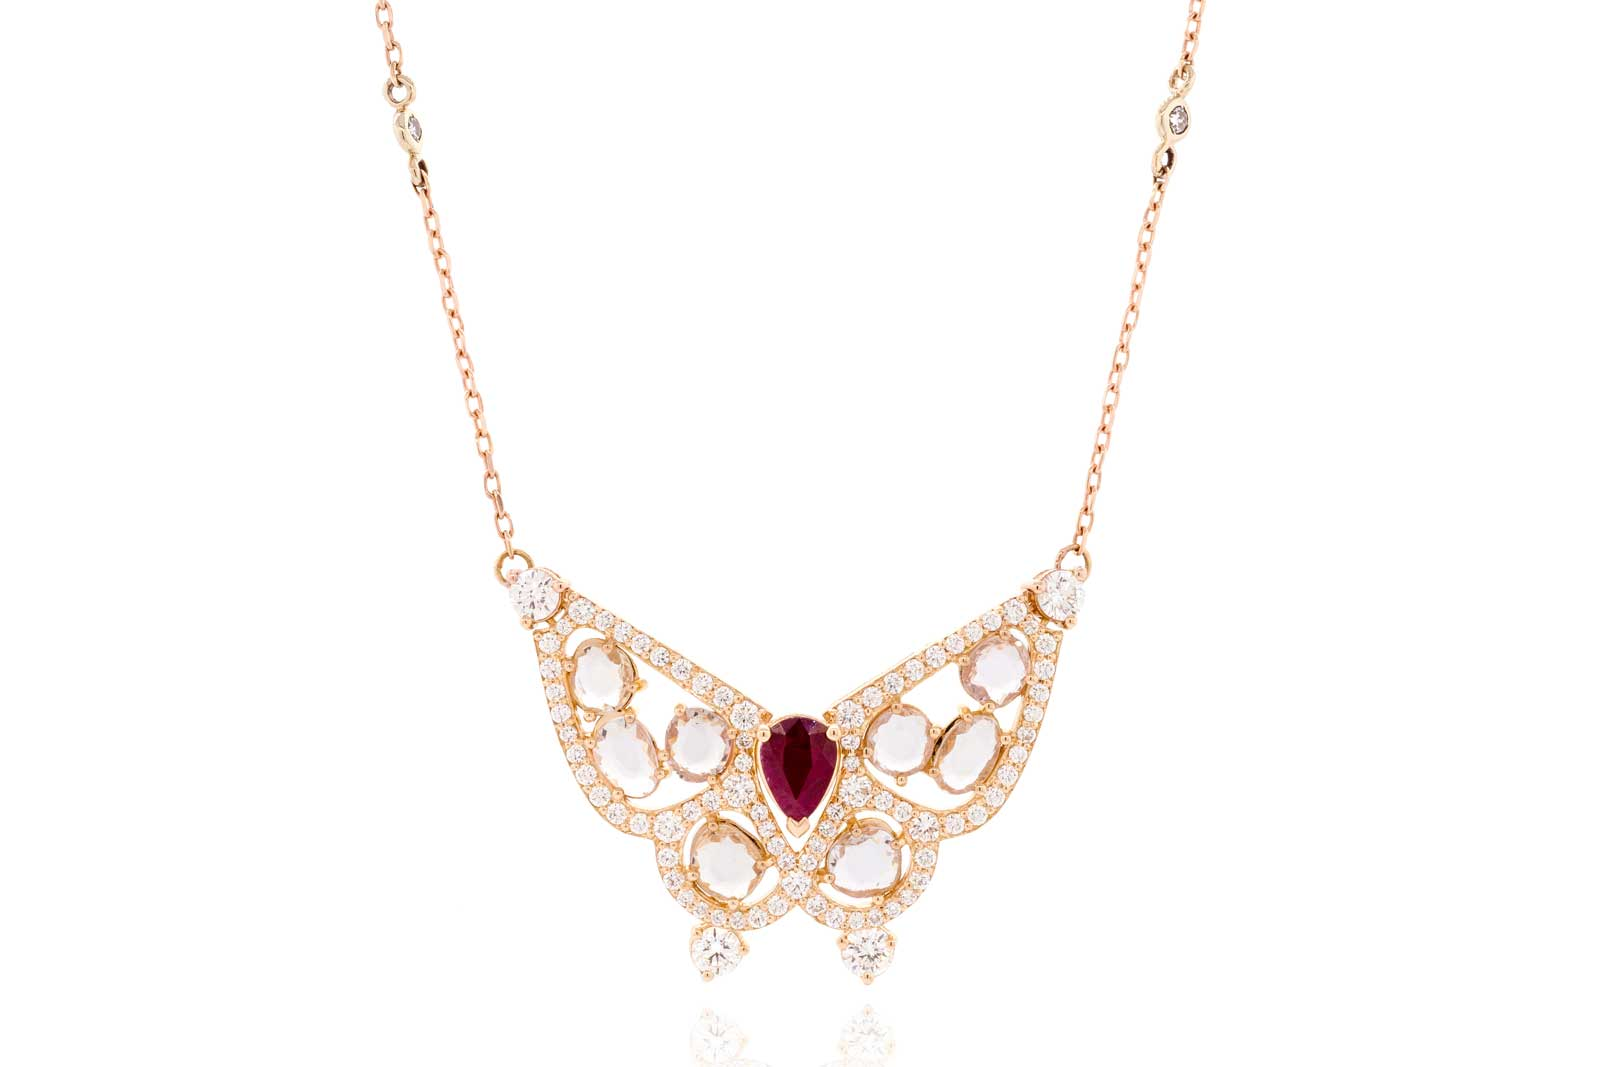 Alessa 'Butterfly' pendant from the 'Give Wings' collection with ruby, colourless rose and brilliant cut diamonds in 18k yellow gold